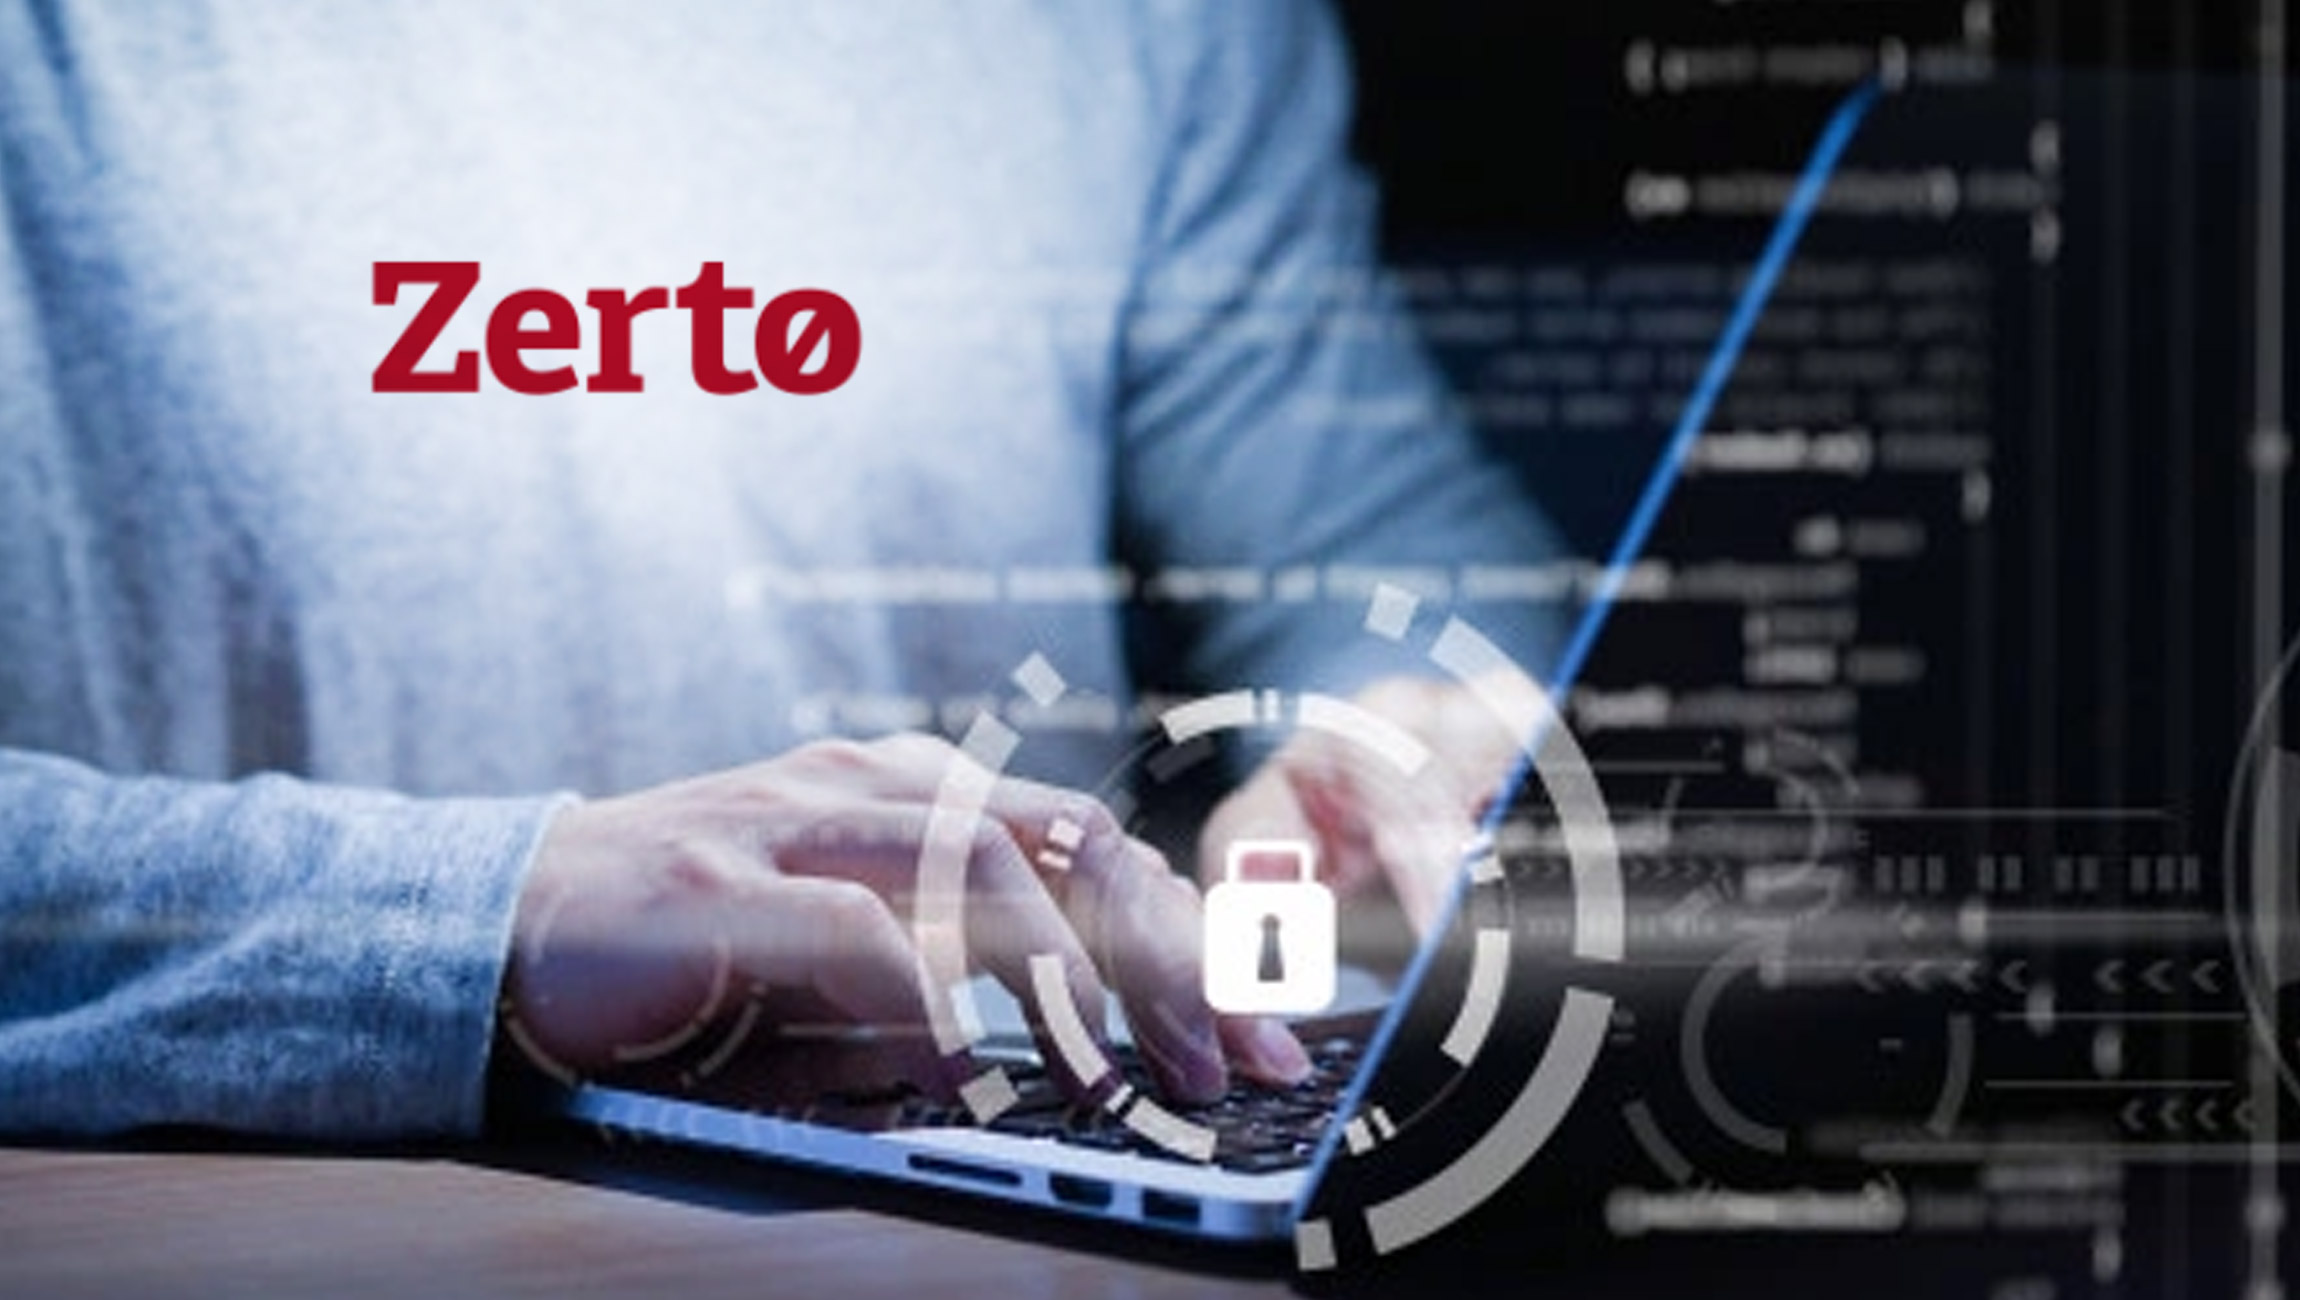 Zerto Customers Continue Expansion Of Data Protection And Disaster Recovery-to-Cloud Technology In 2H 2020